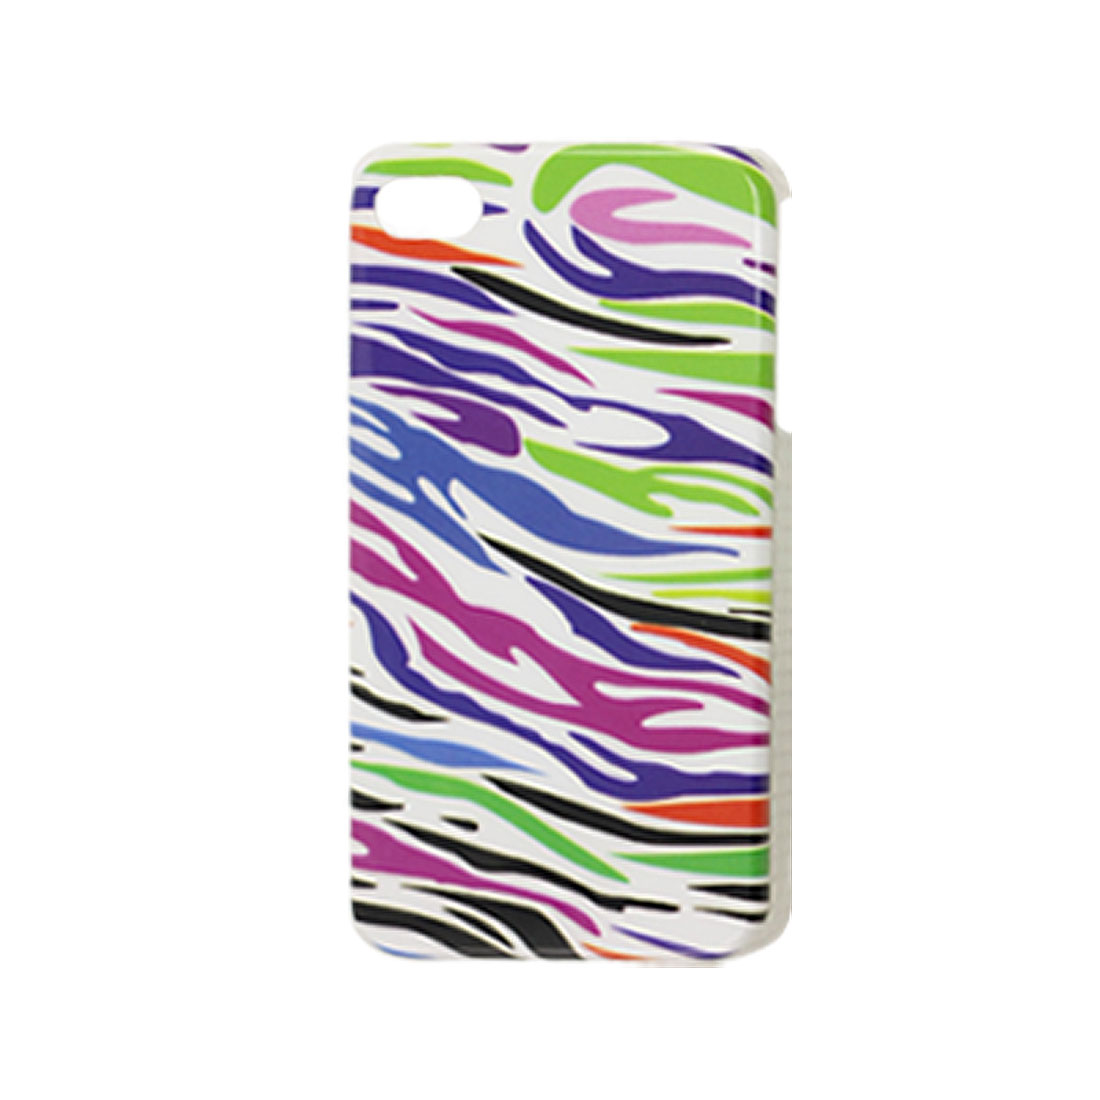 Colorful Zebra Stripe Print IMD Plastic Back Case for iPhone 4 4G 4S